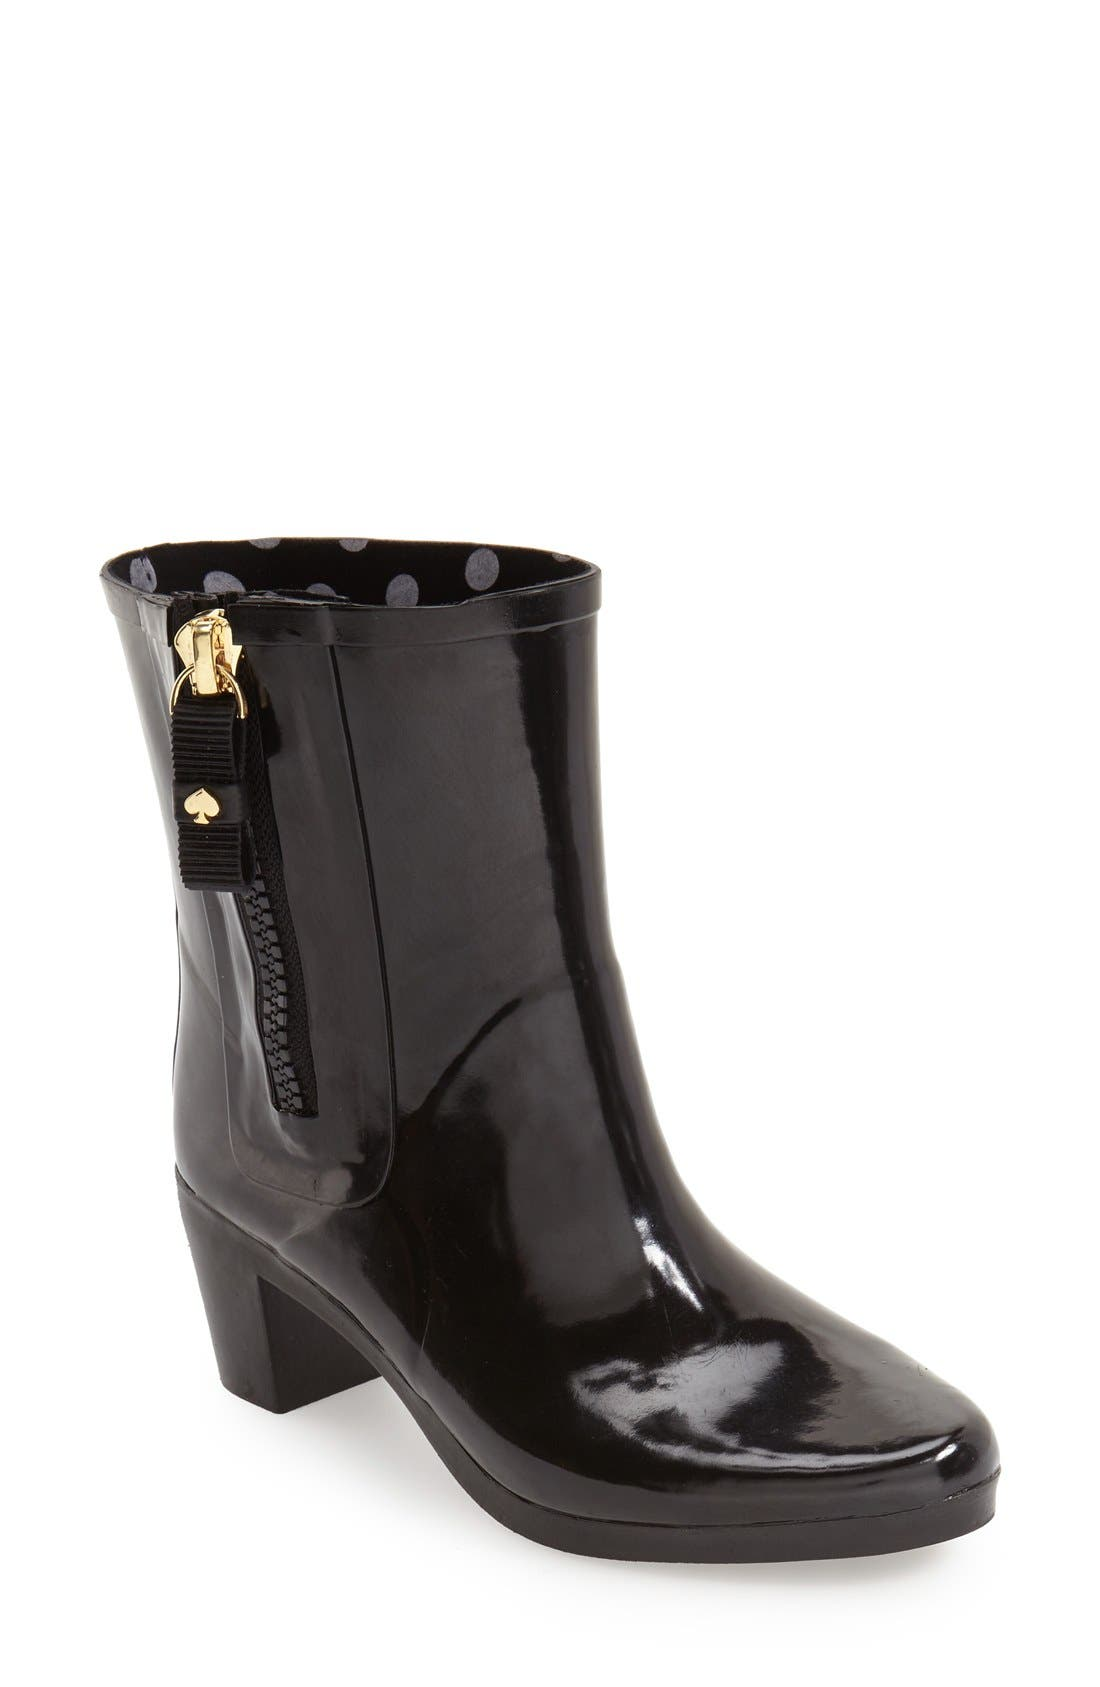 KATE SPADE NEW YORK 'penny' rain boot, Main, color, 001